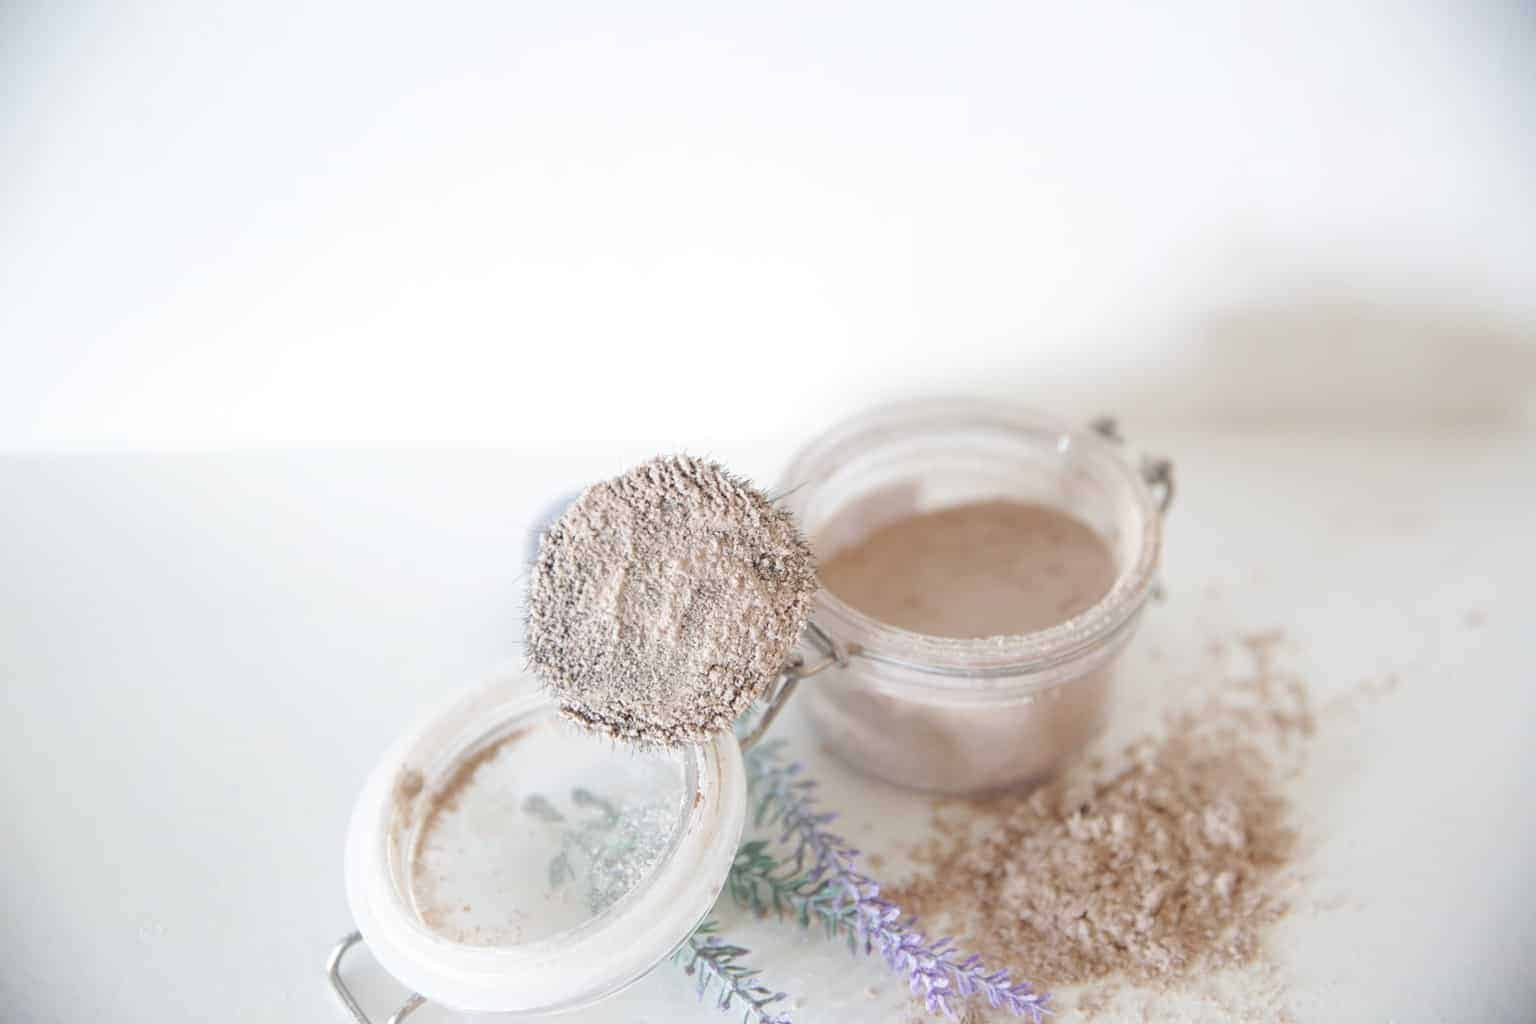 homemade dry shampoo powder in glass flip top container with lavender sprigs